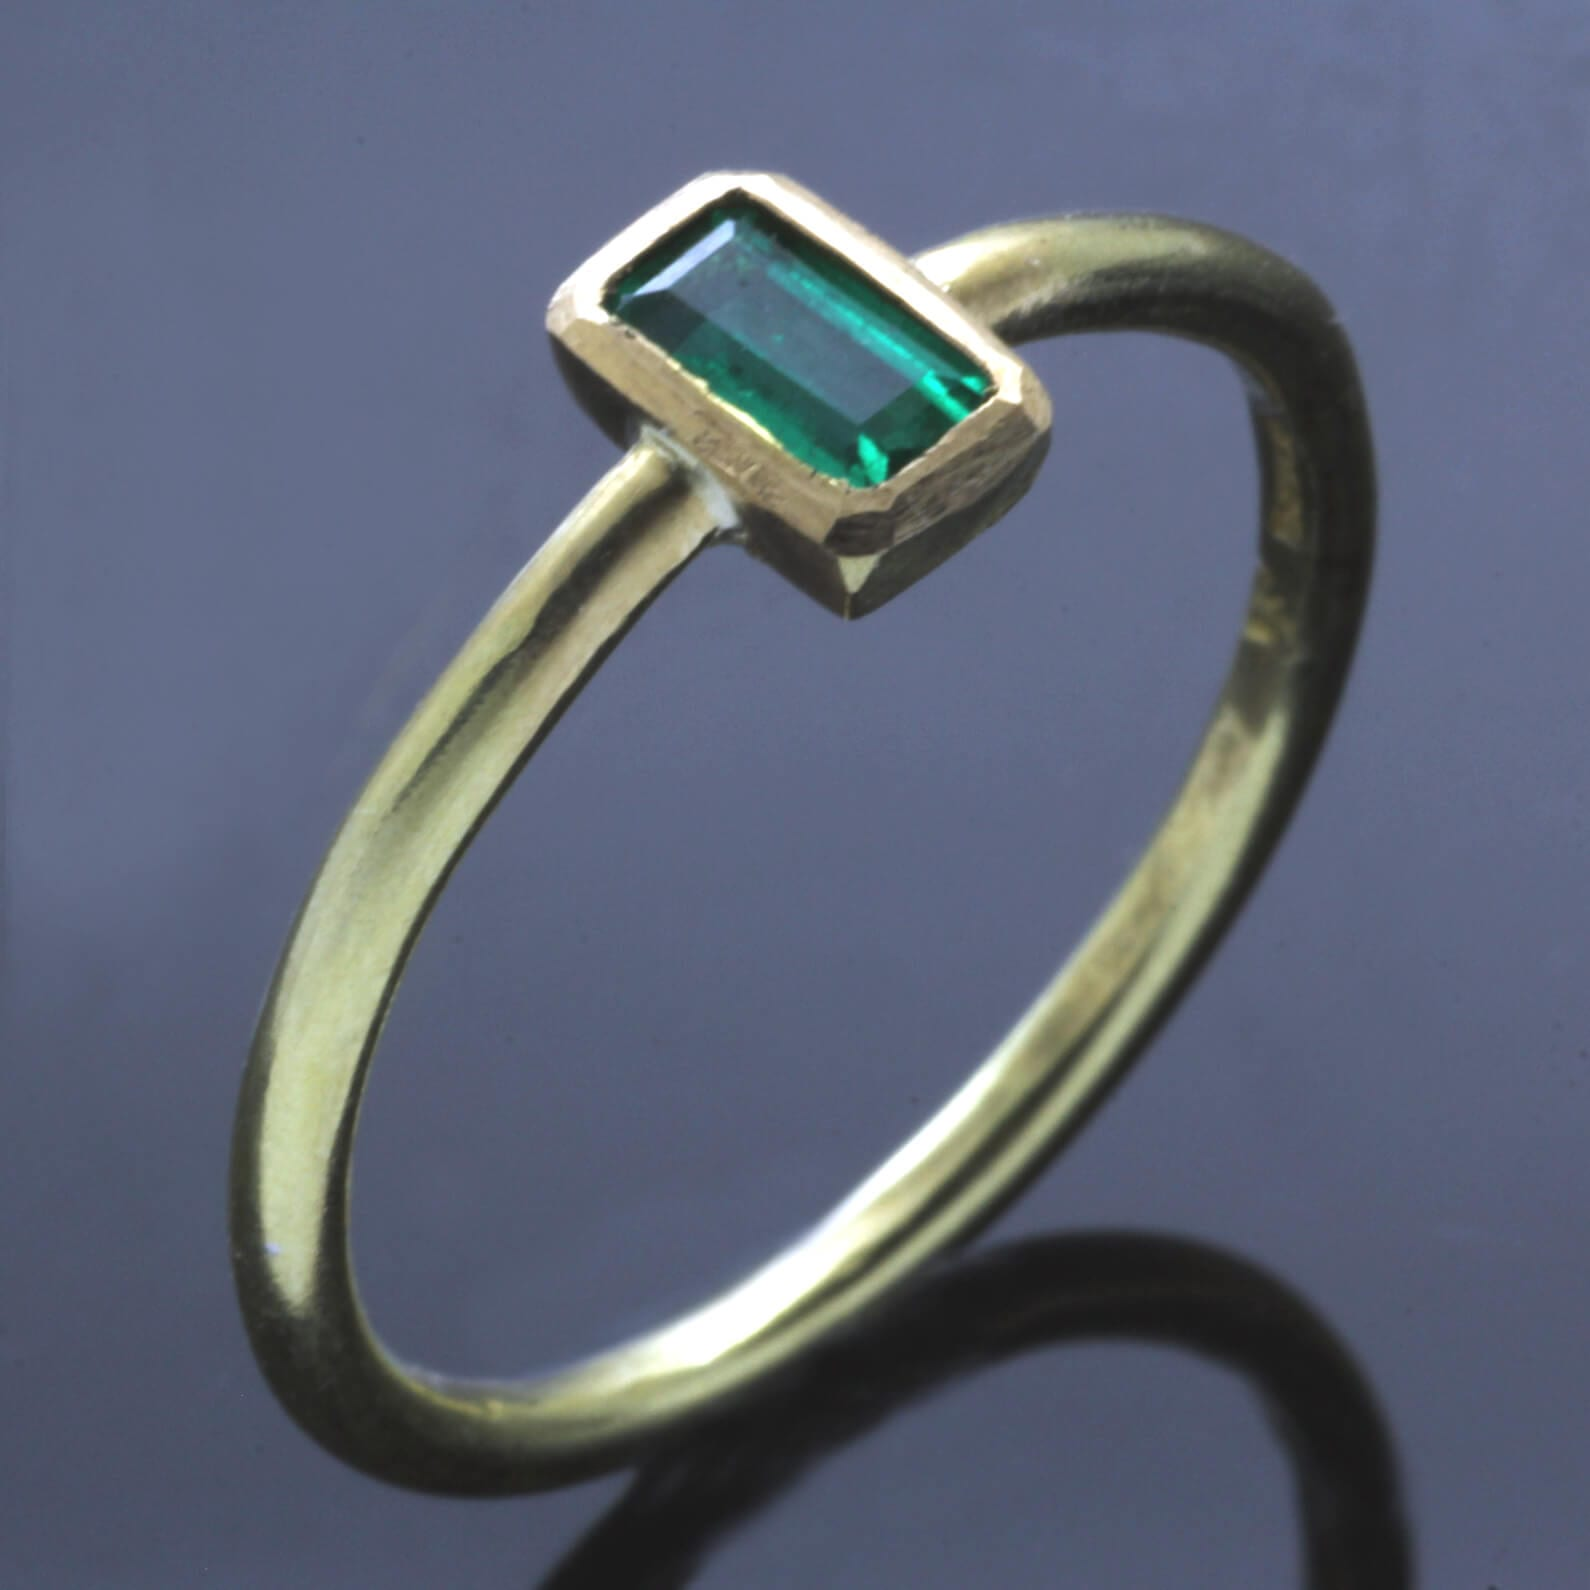 Modern stacking ring handmade in Yellow Gold with Baguette cut Emerald gemstone